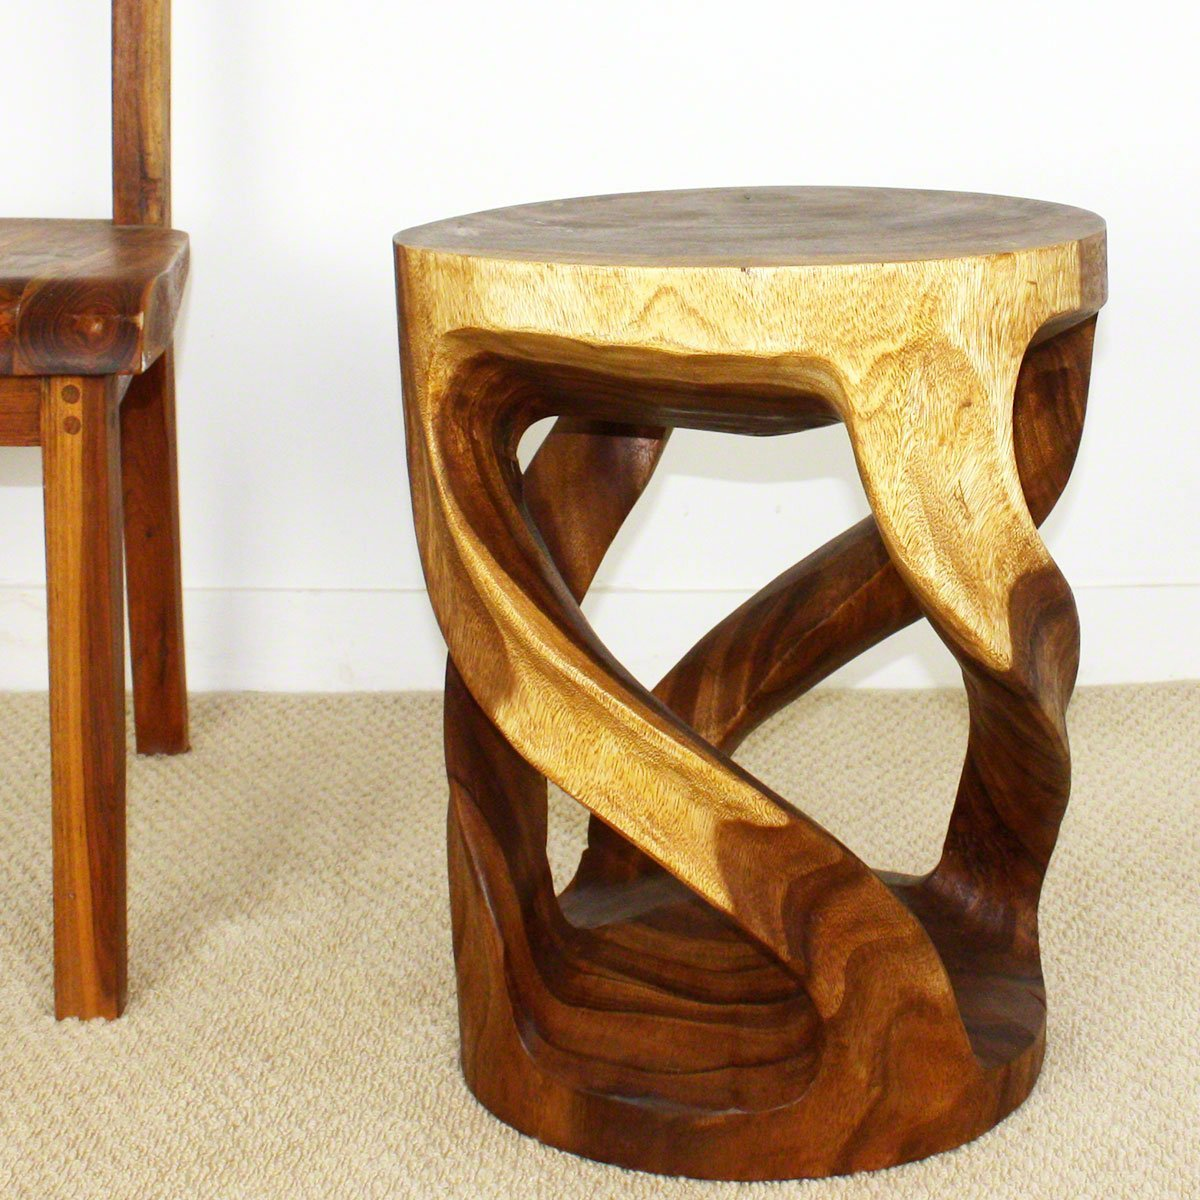 Haussmann Tapered Round Wild Twisted Vine Wood End Table 16x14x20 inch Ht w Walnut Oil Fin